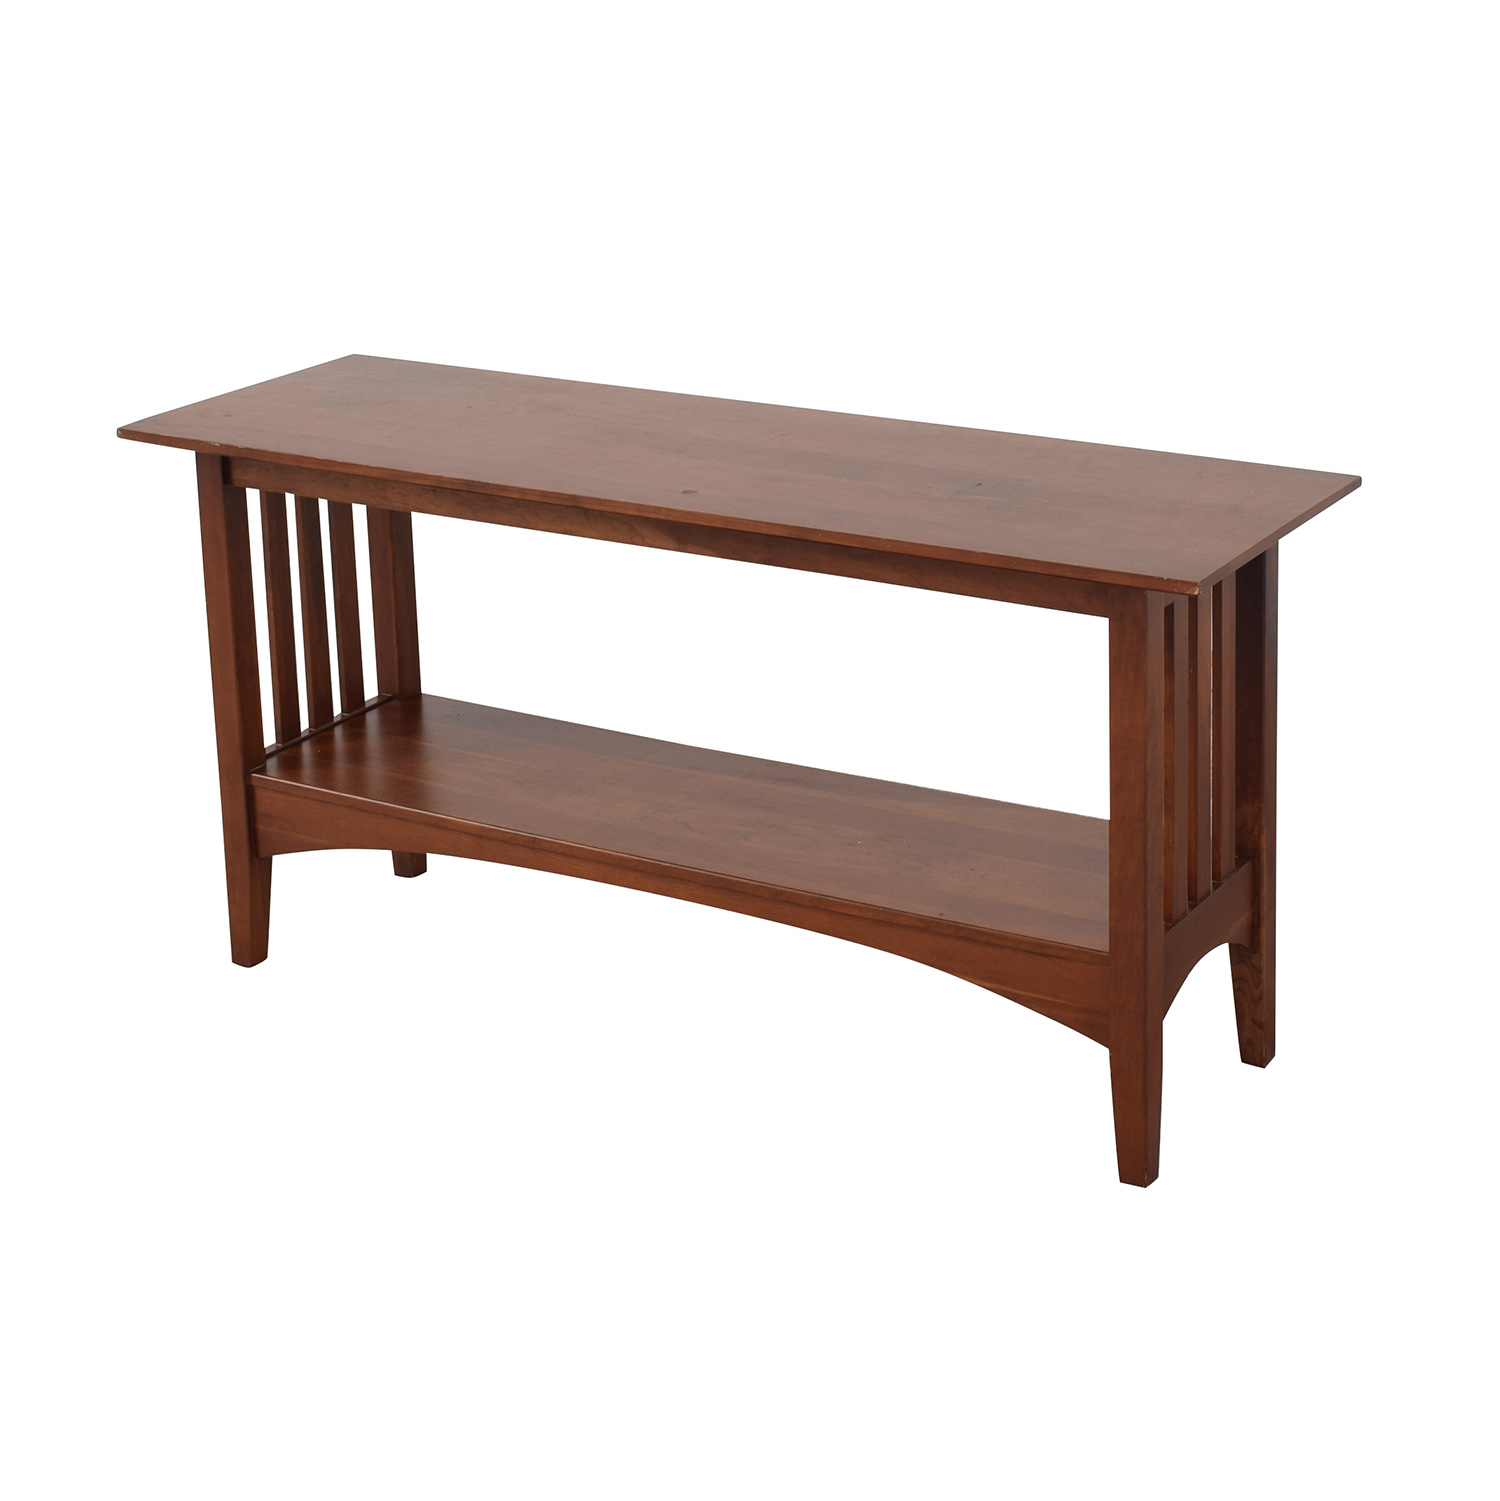 70 Off Ethan Allen American Impressions Console Table Tables